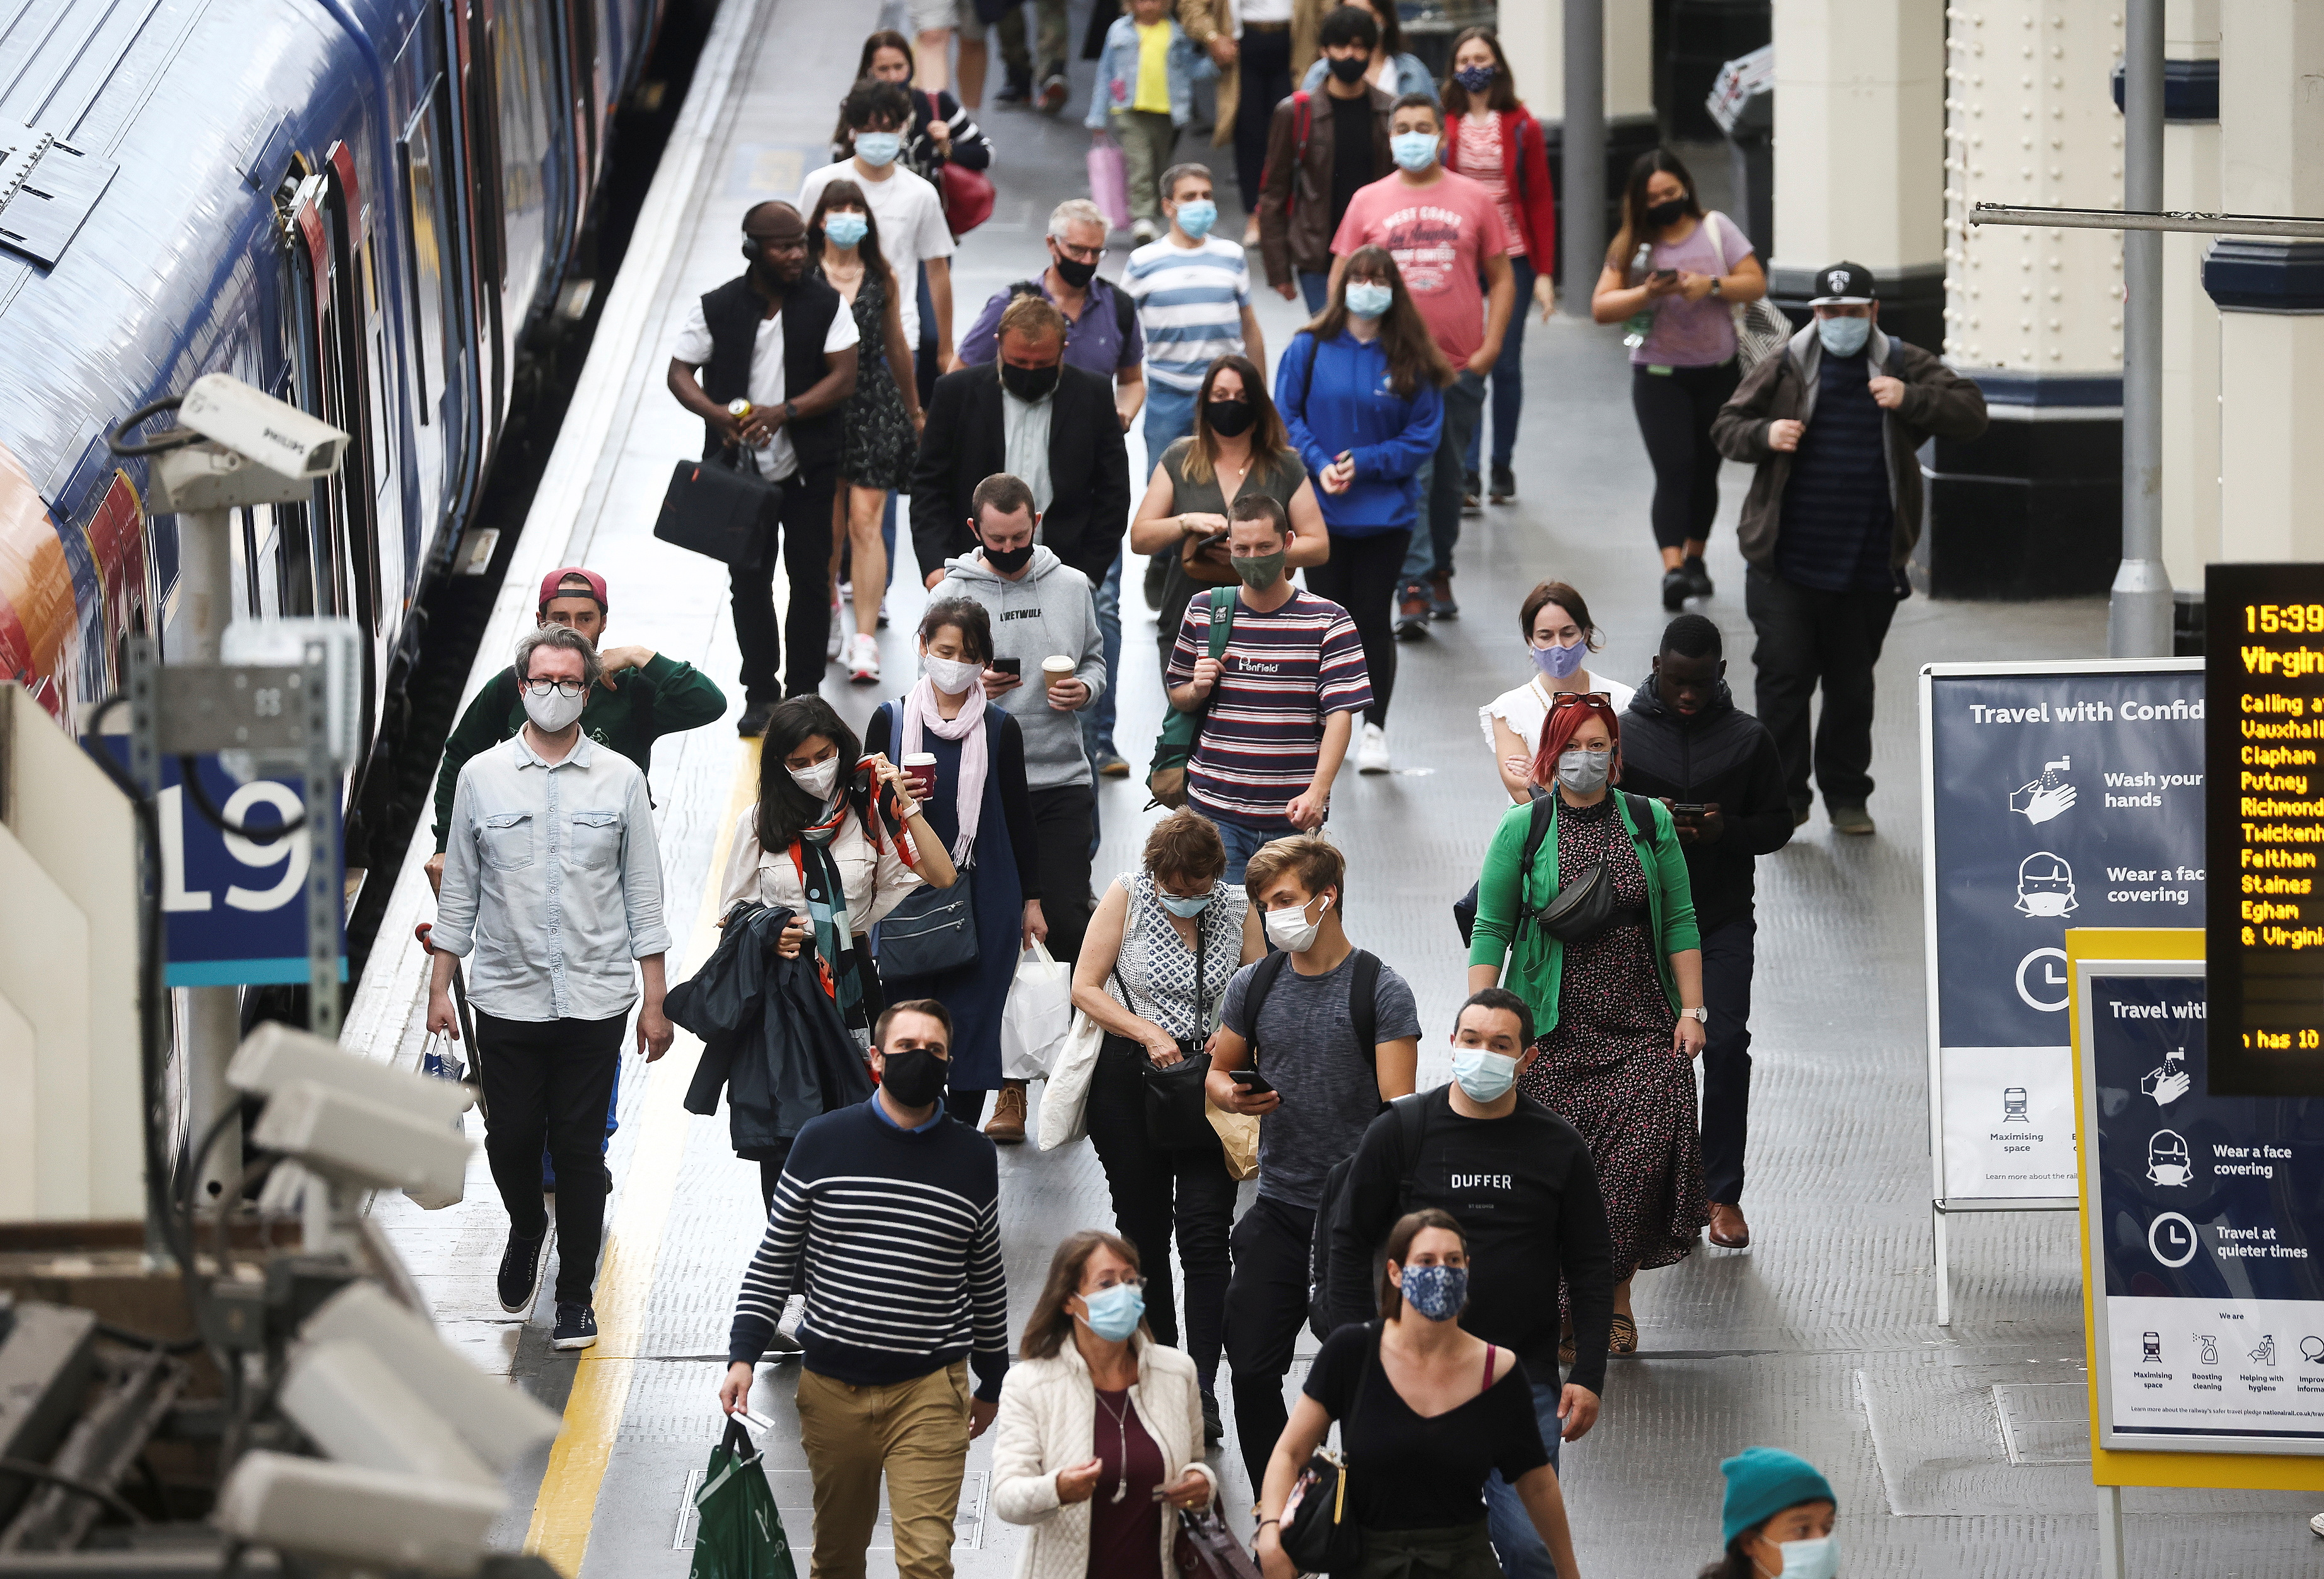 People, some wearing protective face masks, walk through Waterloo Station, amid the coronavirus disease (COVID-19) pandemic, in London, Britain, July 4, 2021. REUTERS/Henry Nicholls